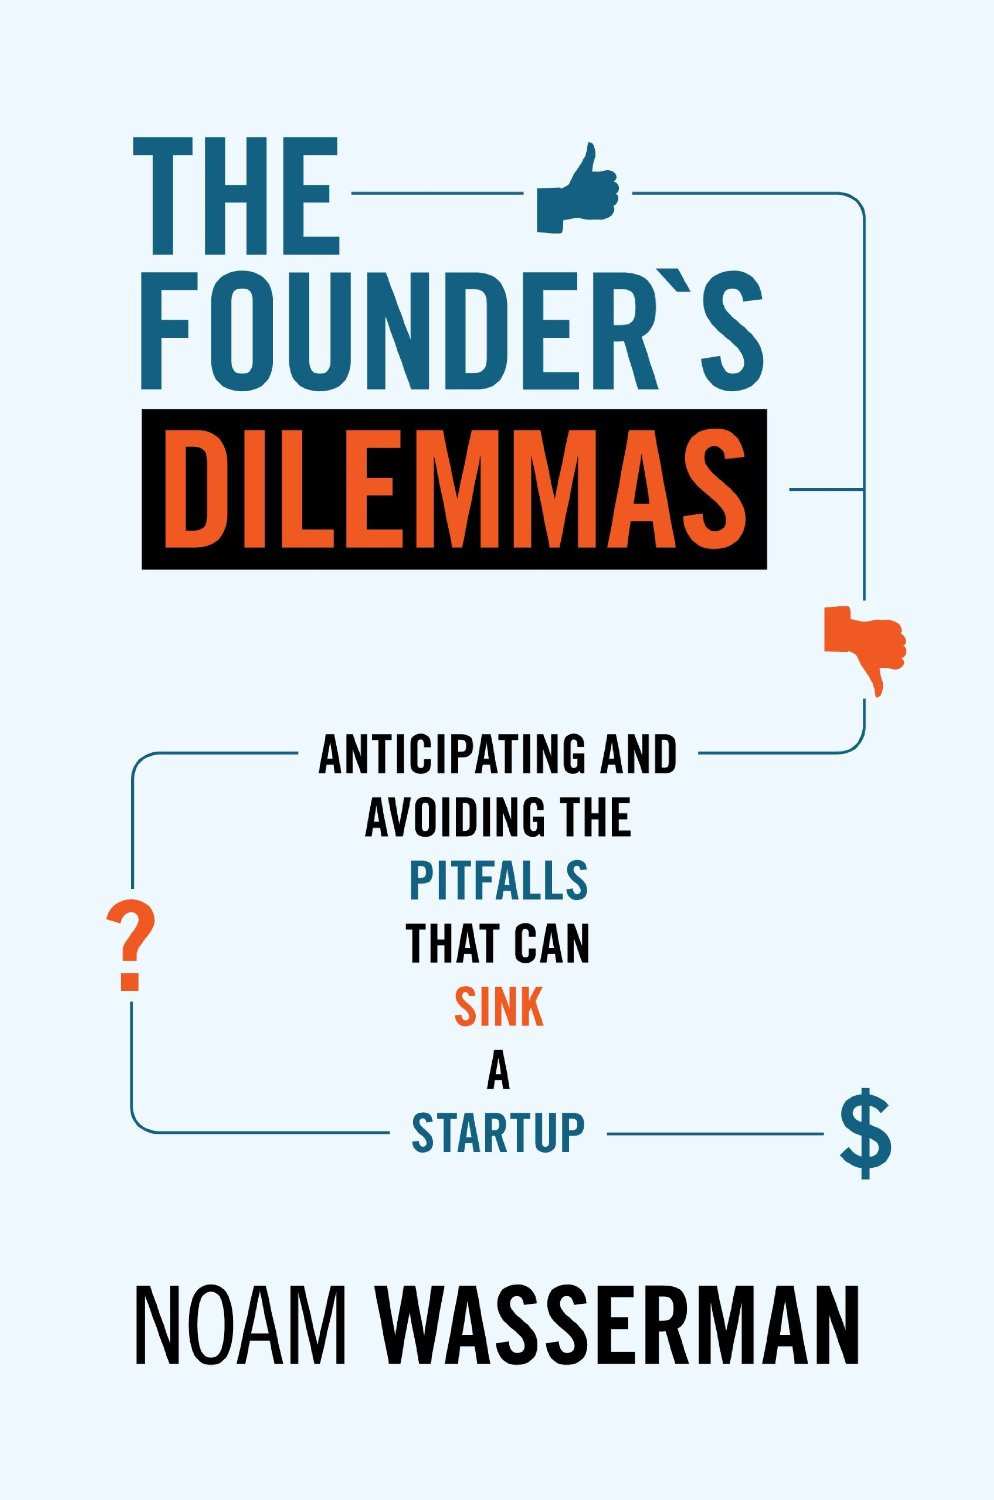 founder's dilemmas book cover